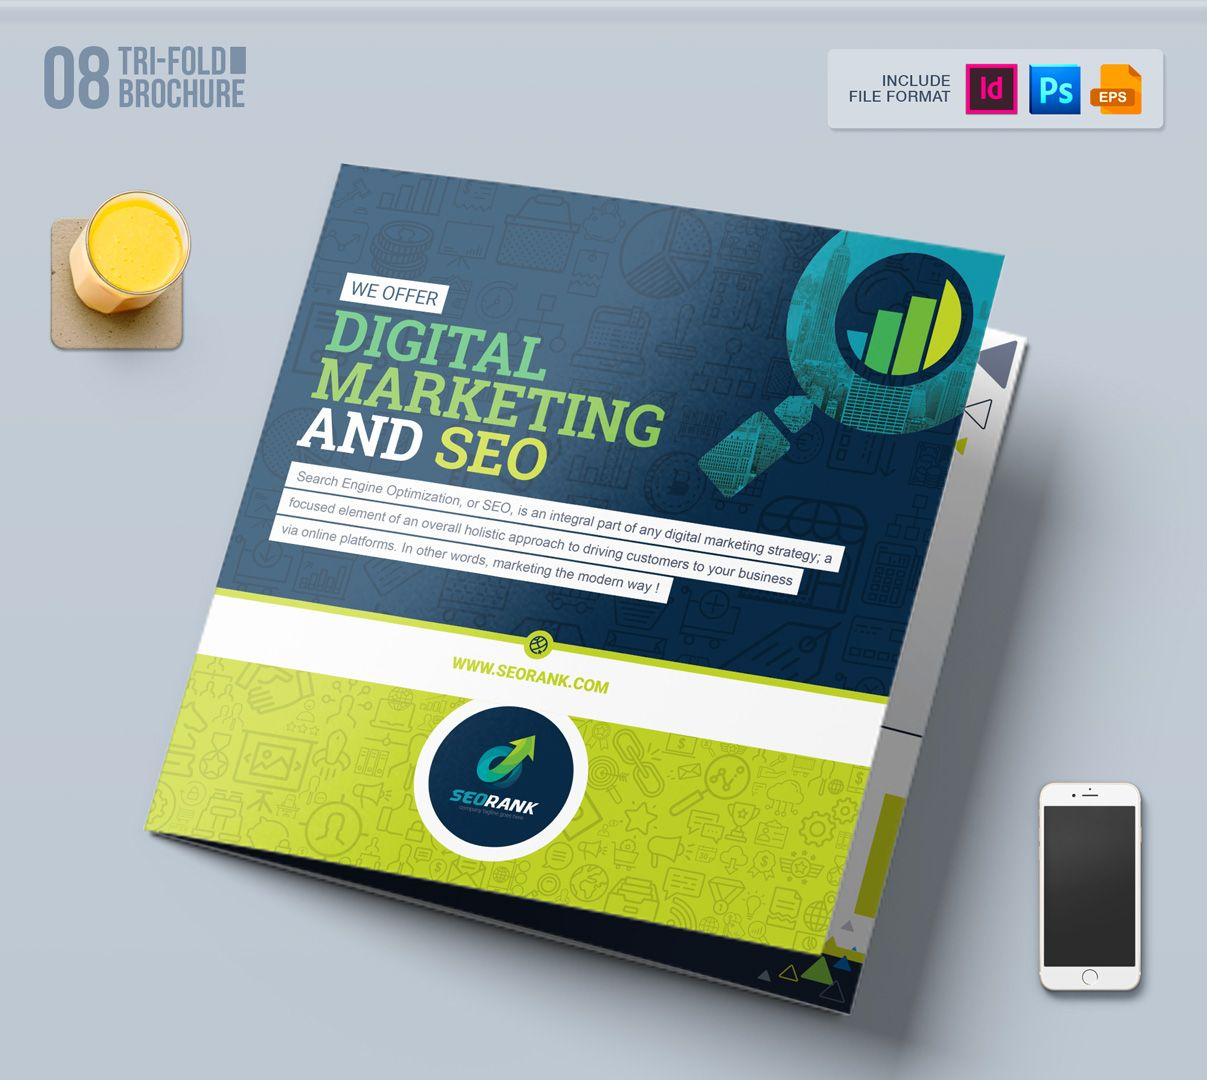 Branding Stationery Bundle For Seo And Digital Marketing Agency Or Company Corporate Identity Template 66283 Stationery Branding Digital Marketing Agency Digital Marketing